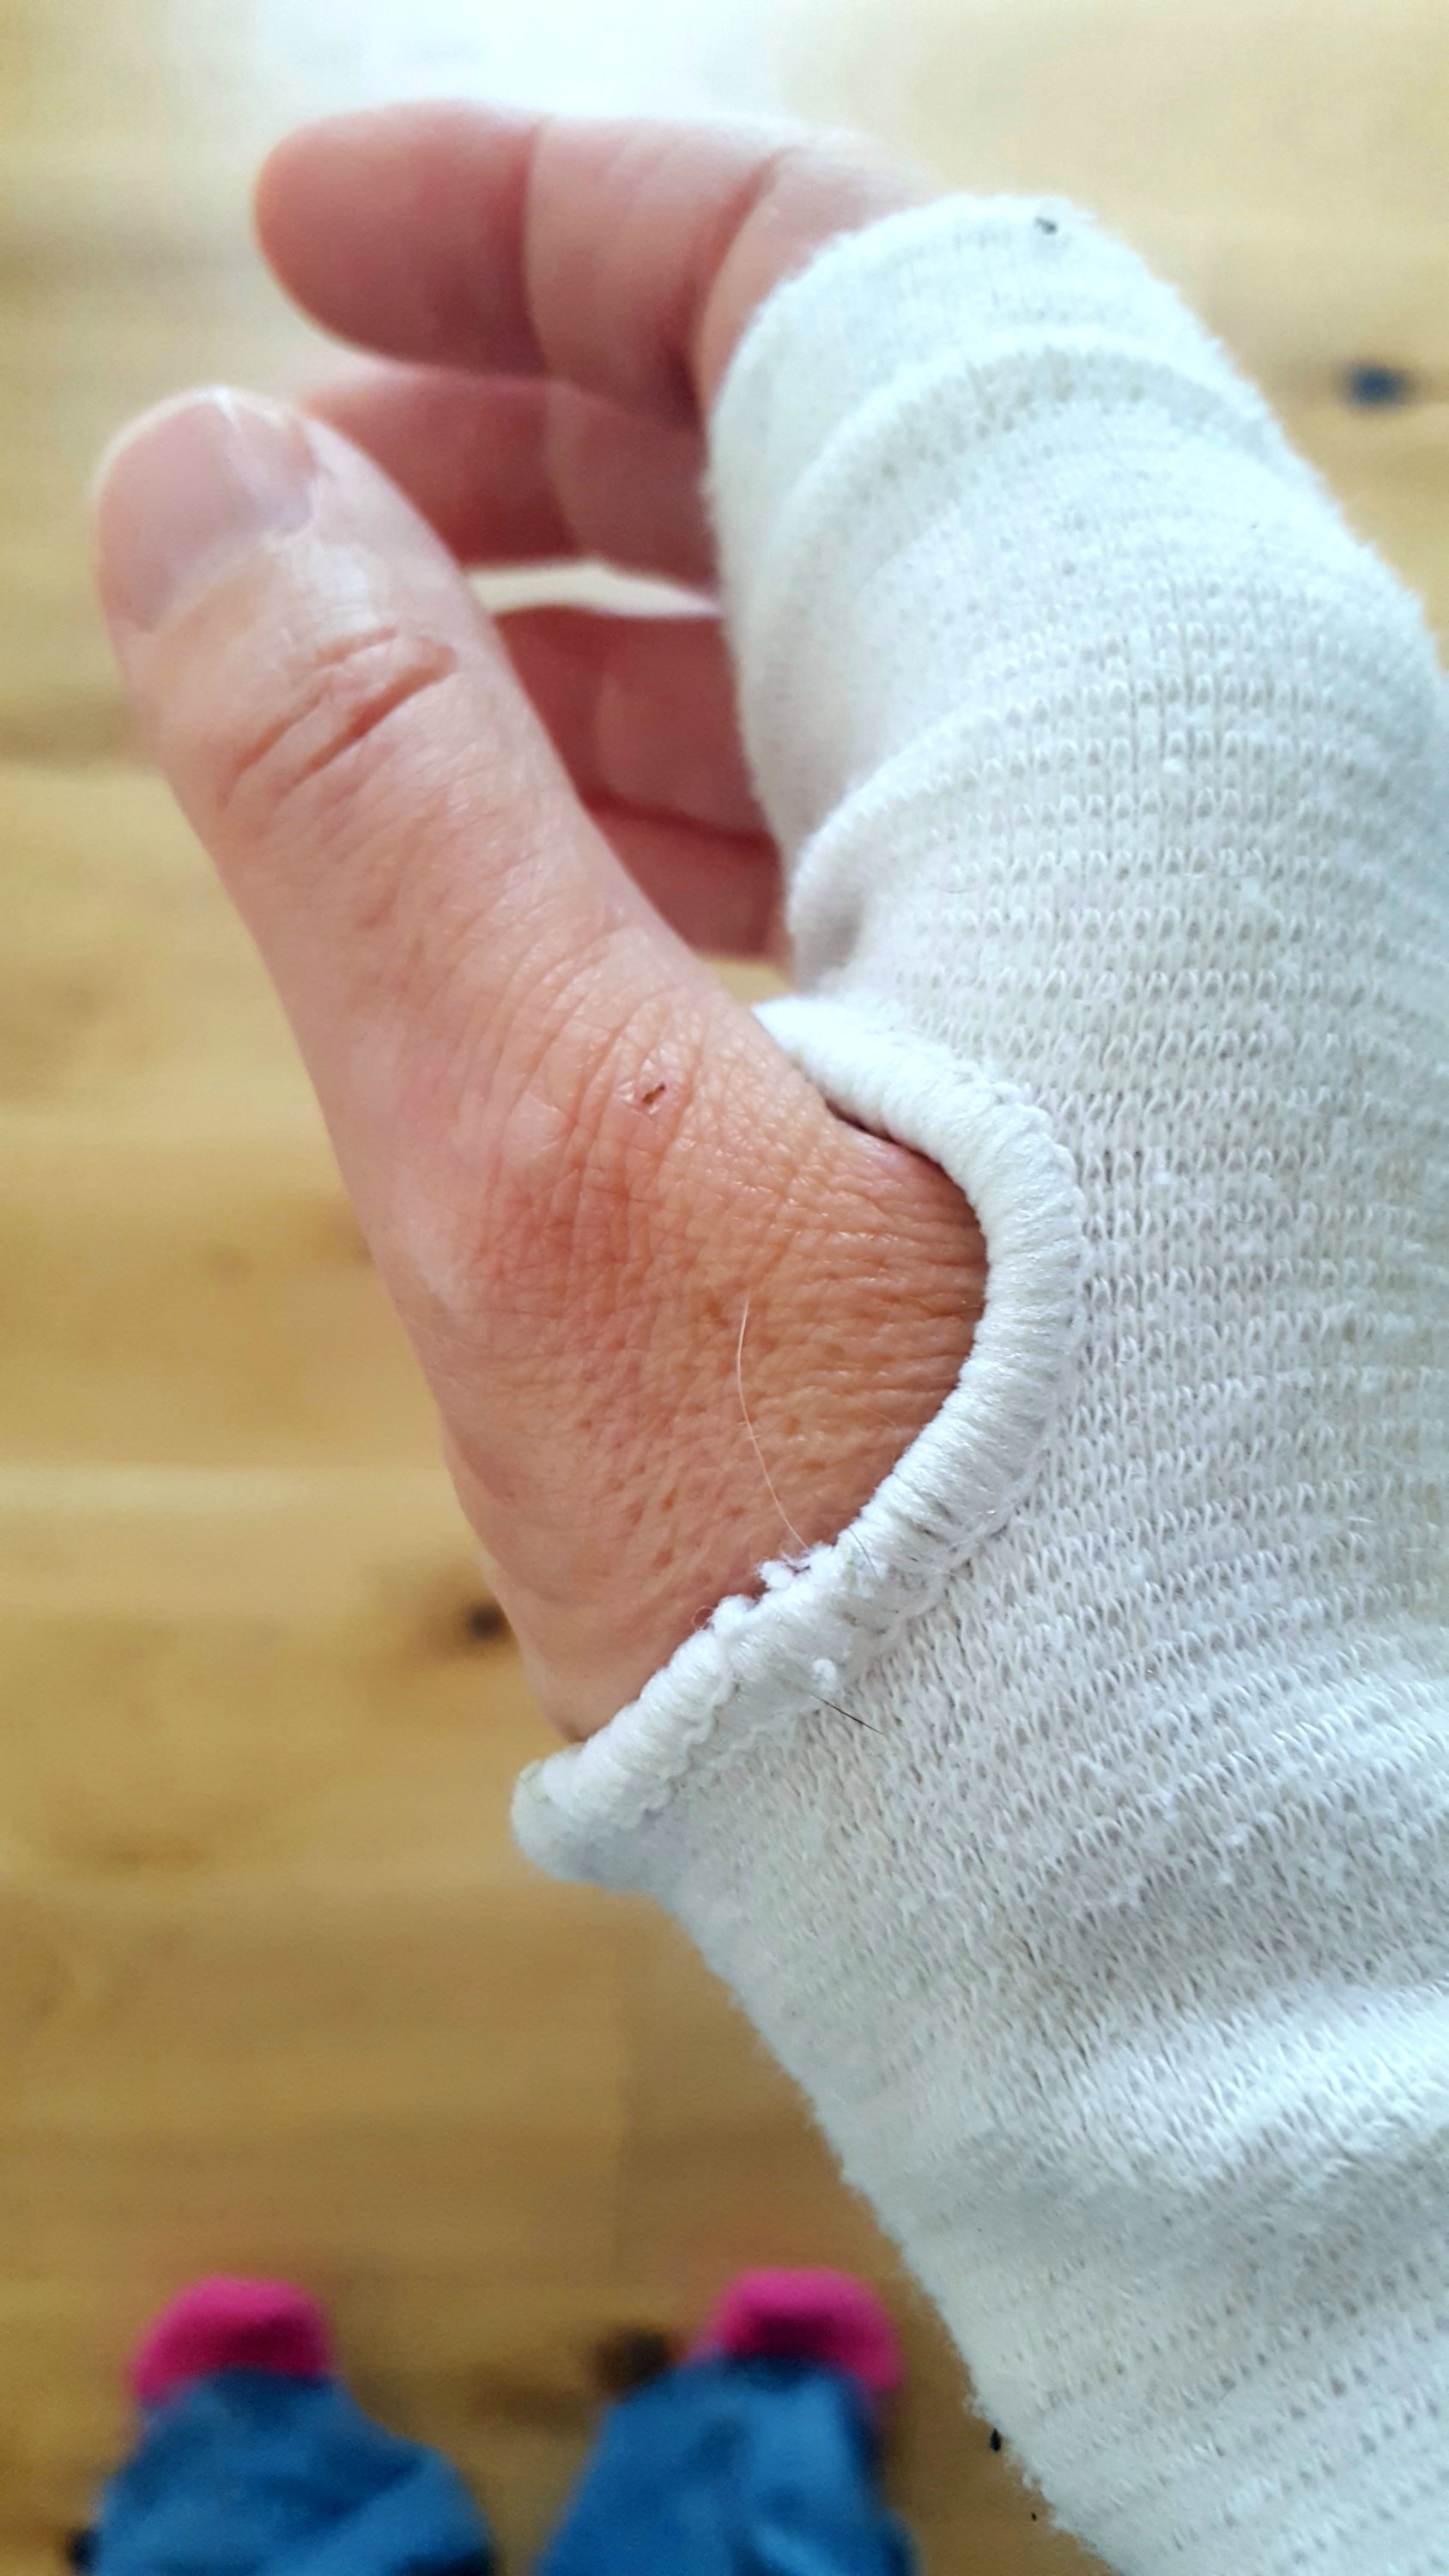 Close up of a hand wearing a wrist support. Socked feet are in the far distance below left.